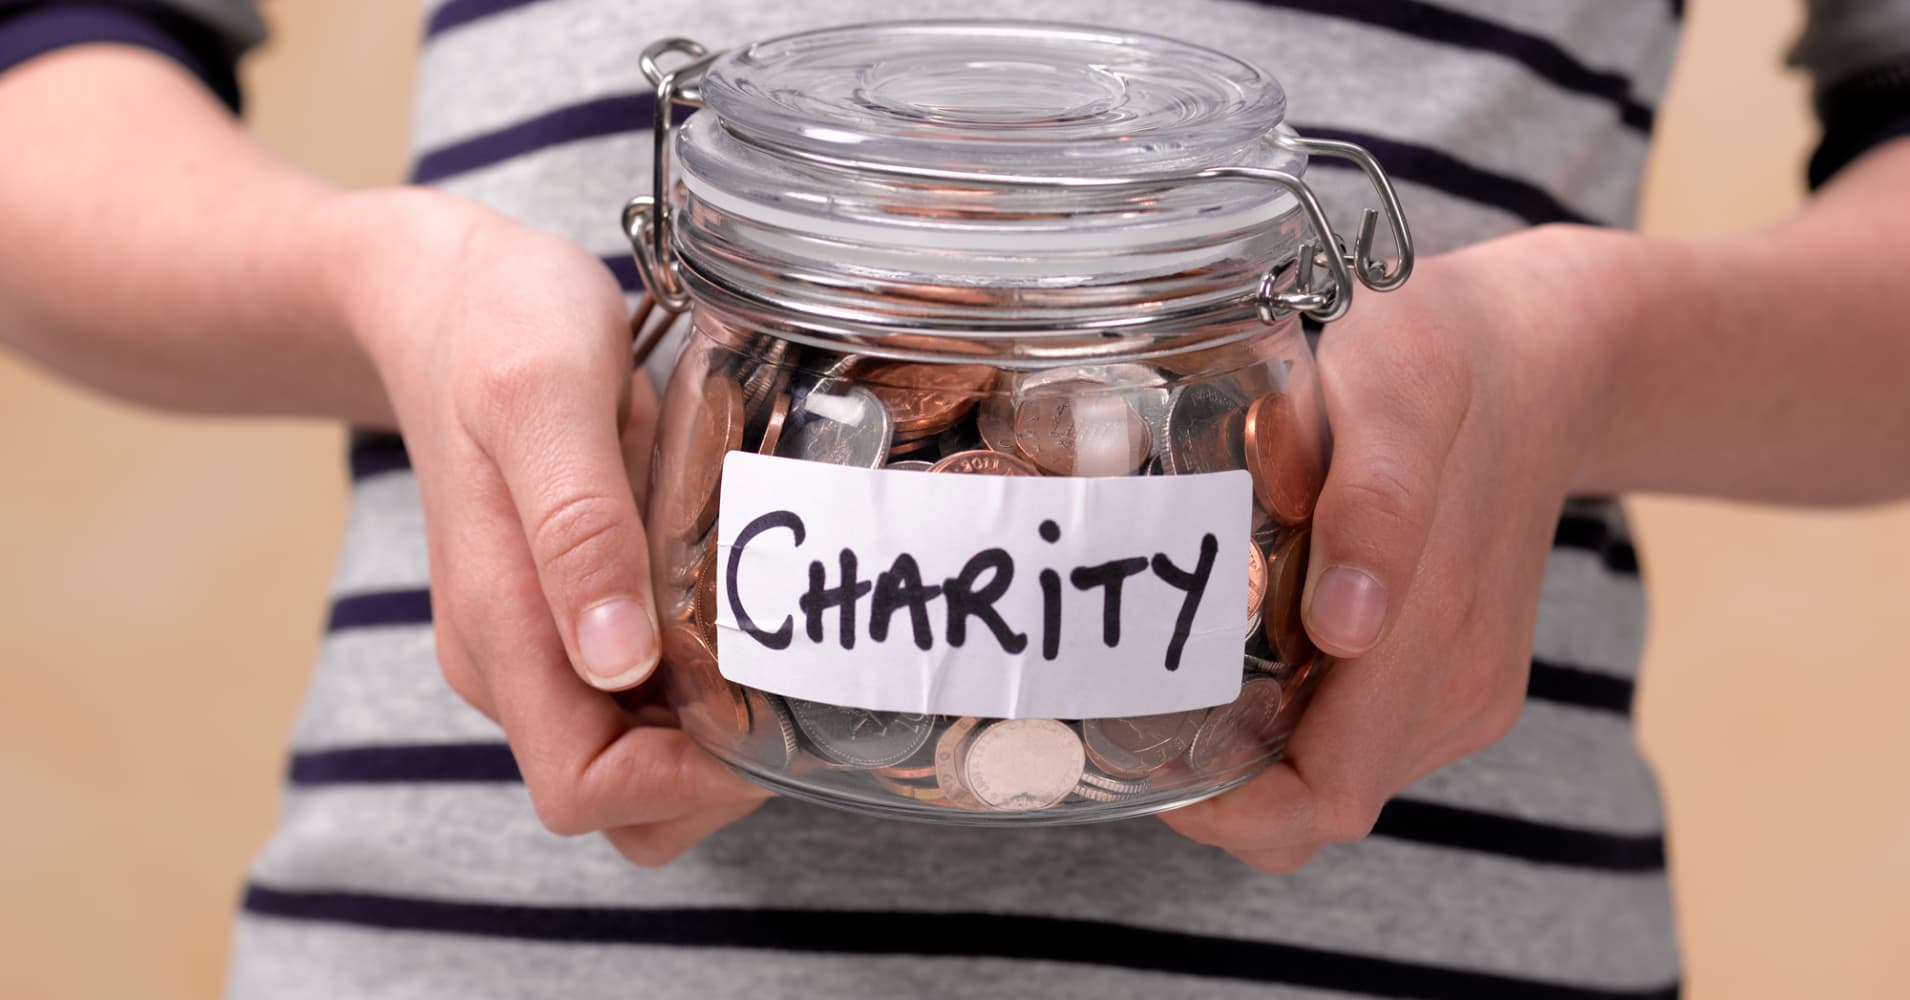 Charity really does begin at home. Here's why